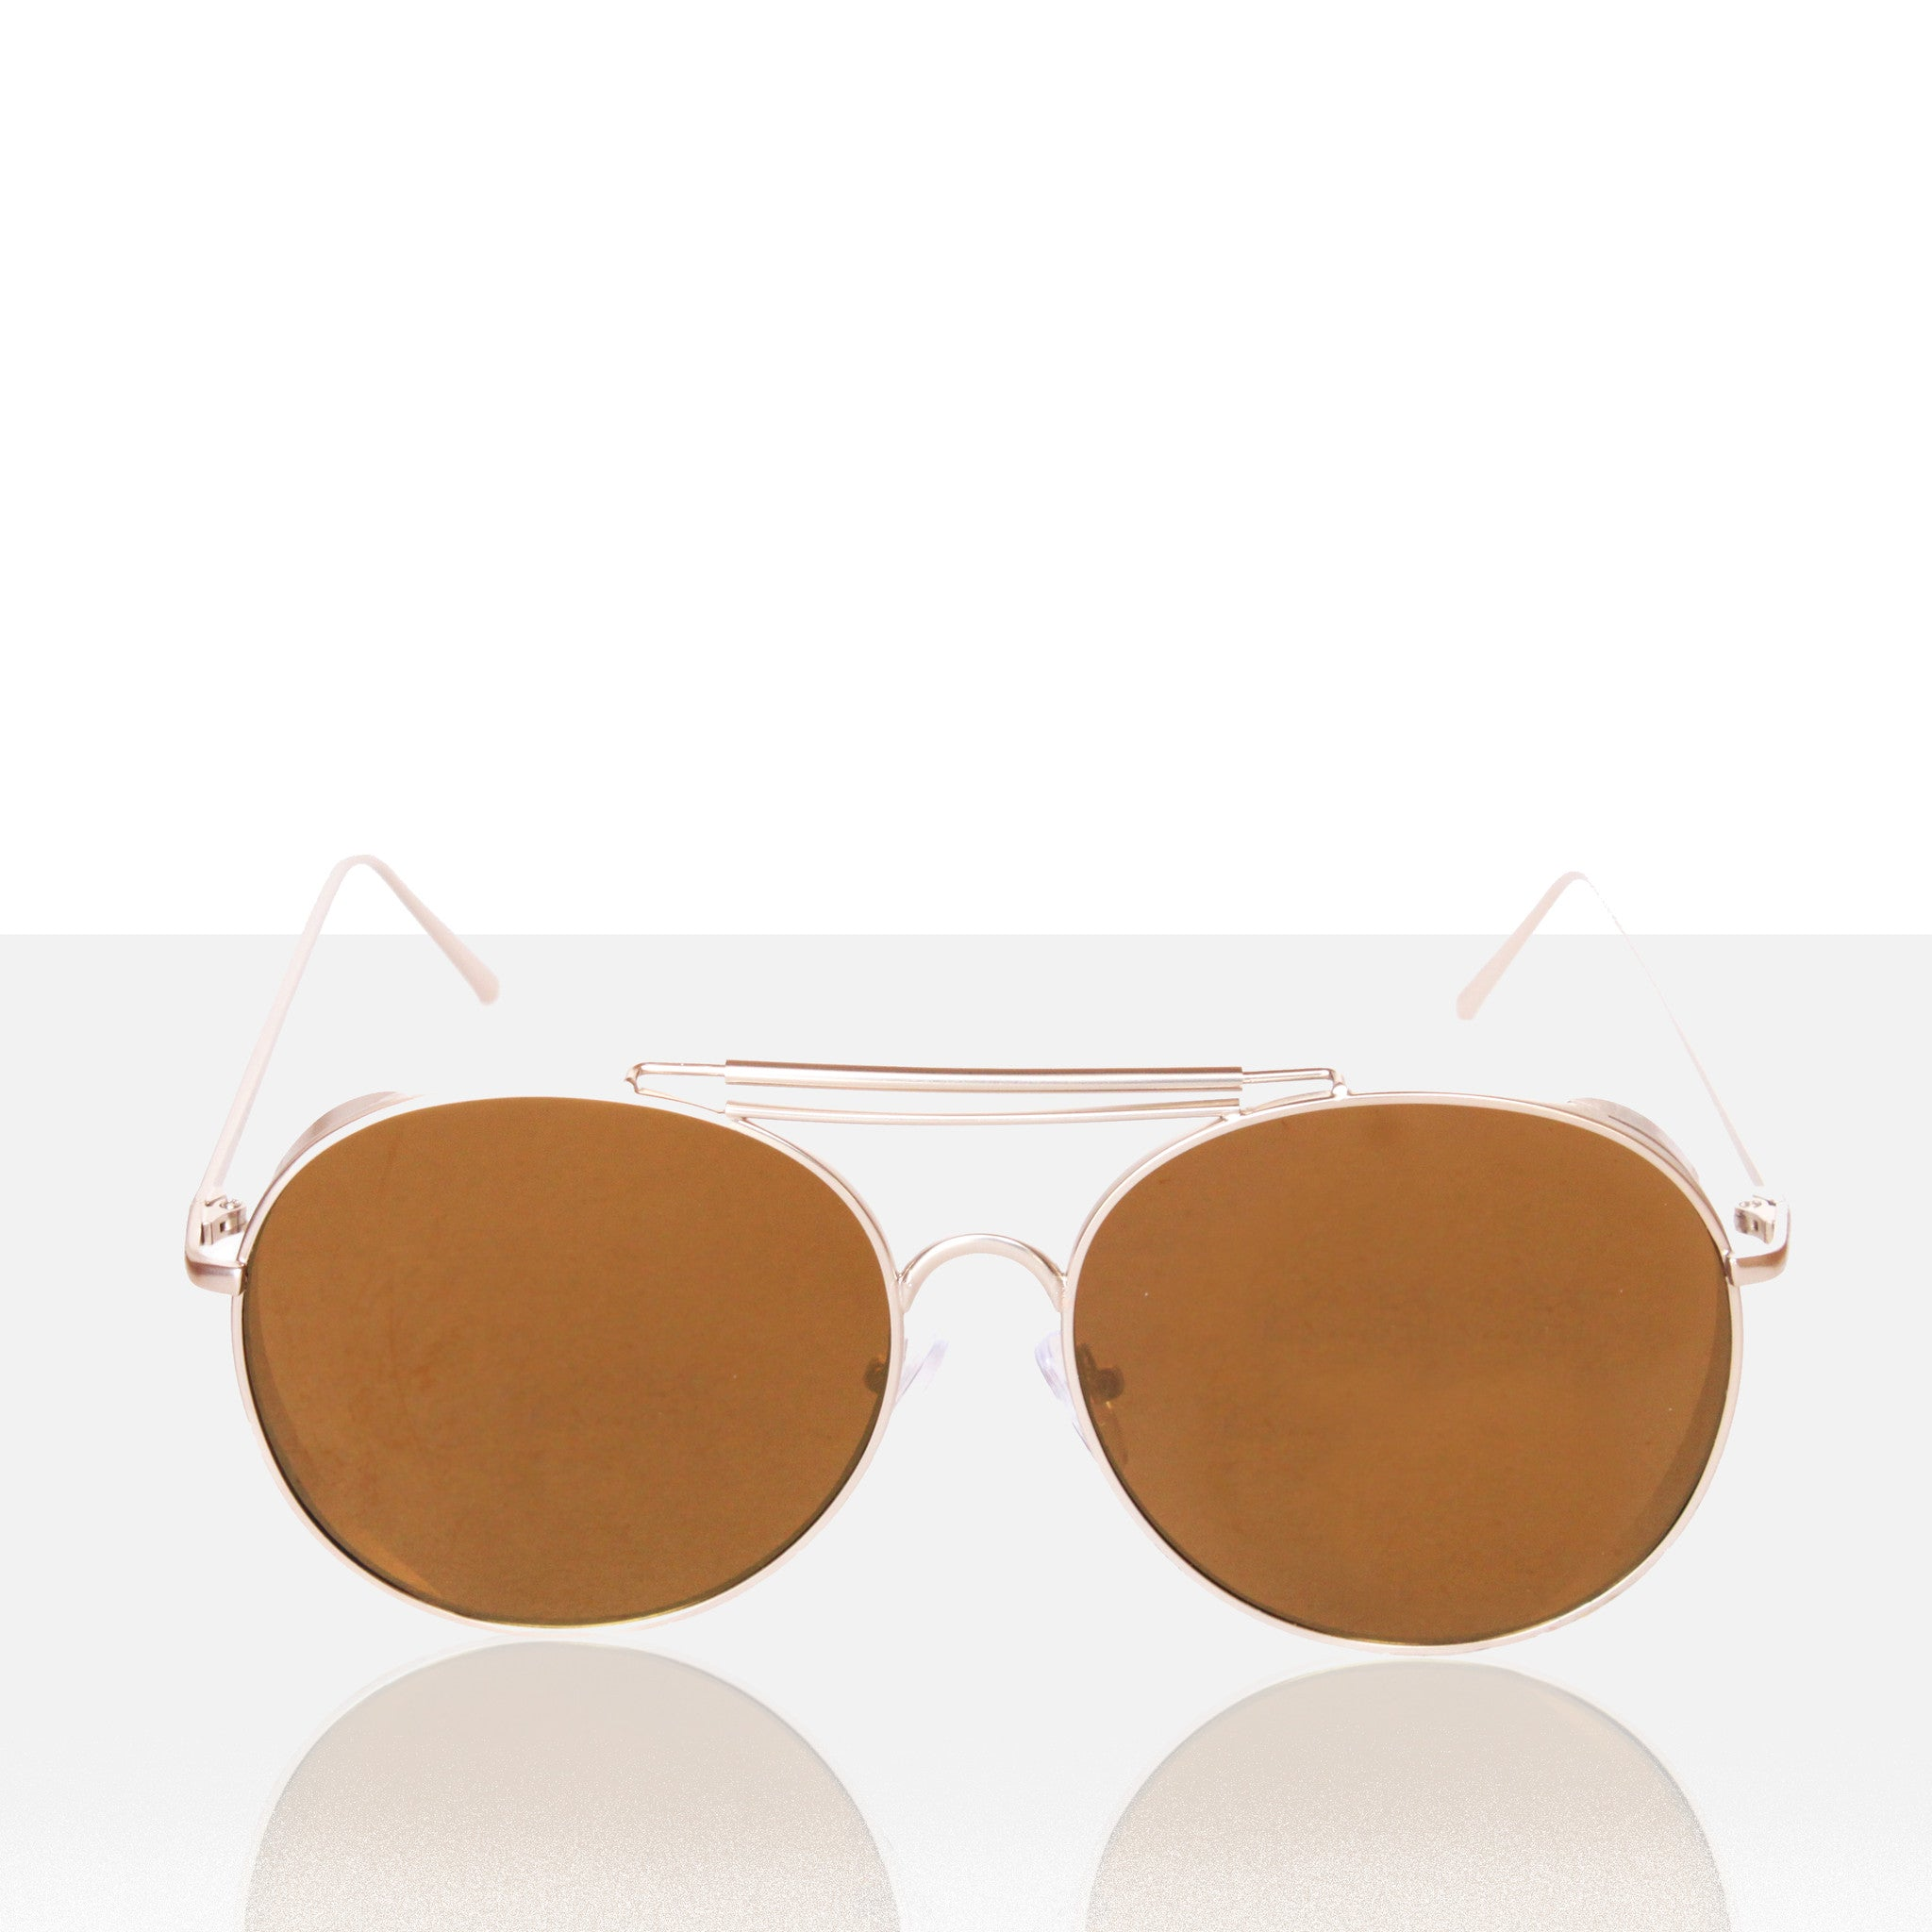 Miami Round Aviator Sunglasses - Melie Bianco Handbags Accessories